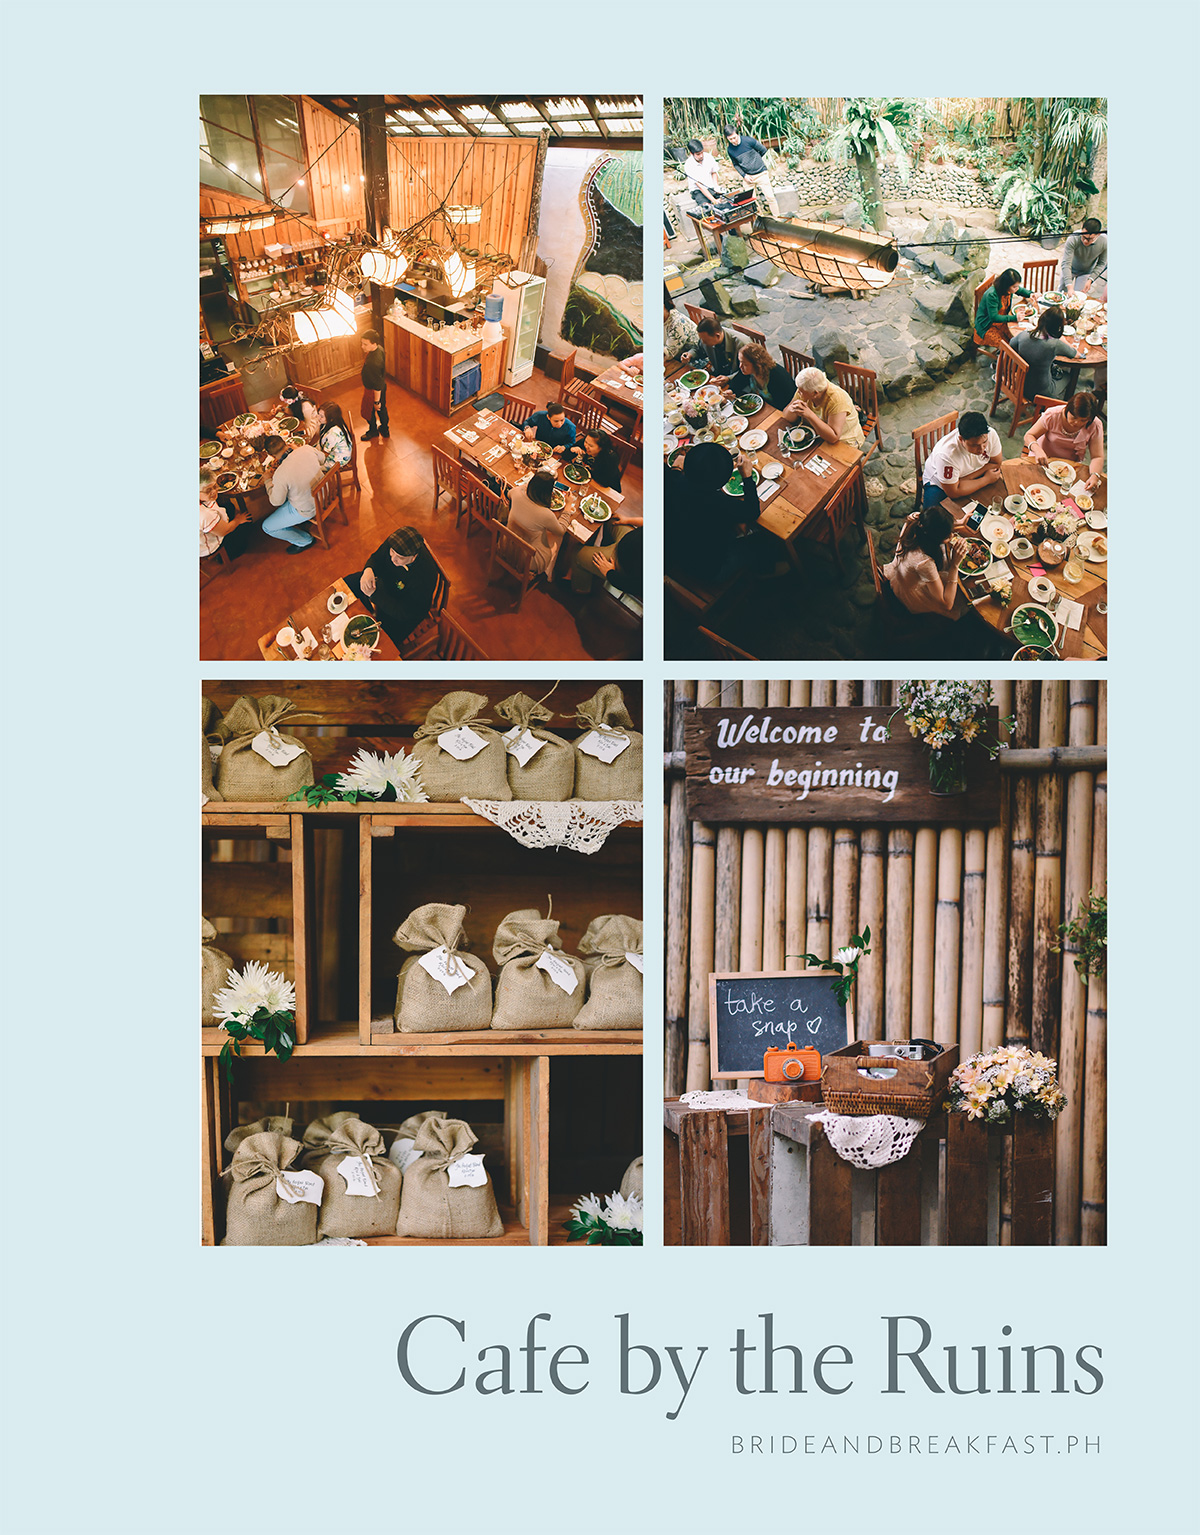 Cafe by the Ruins